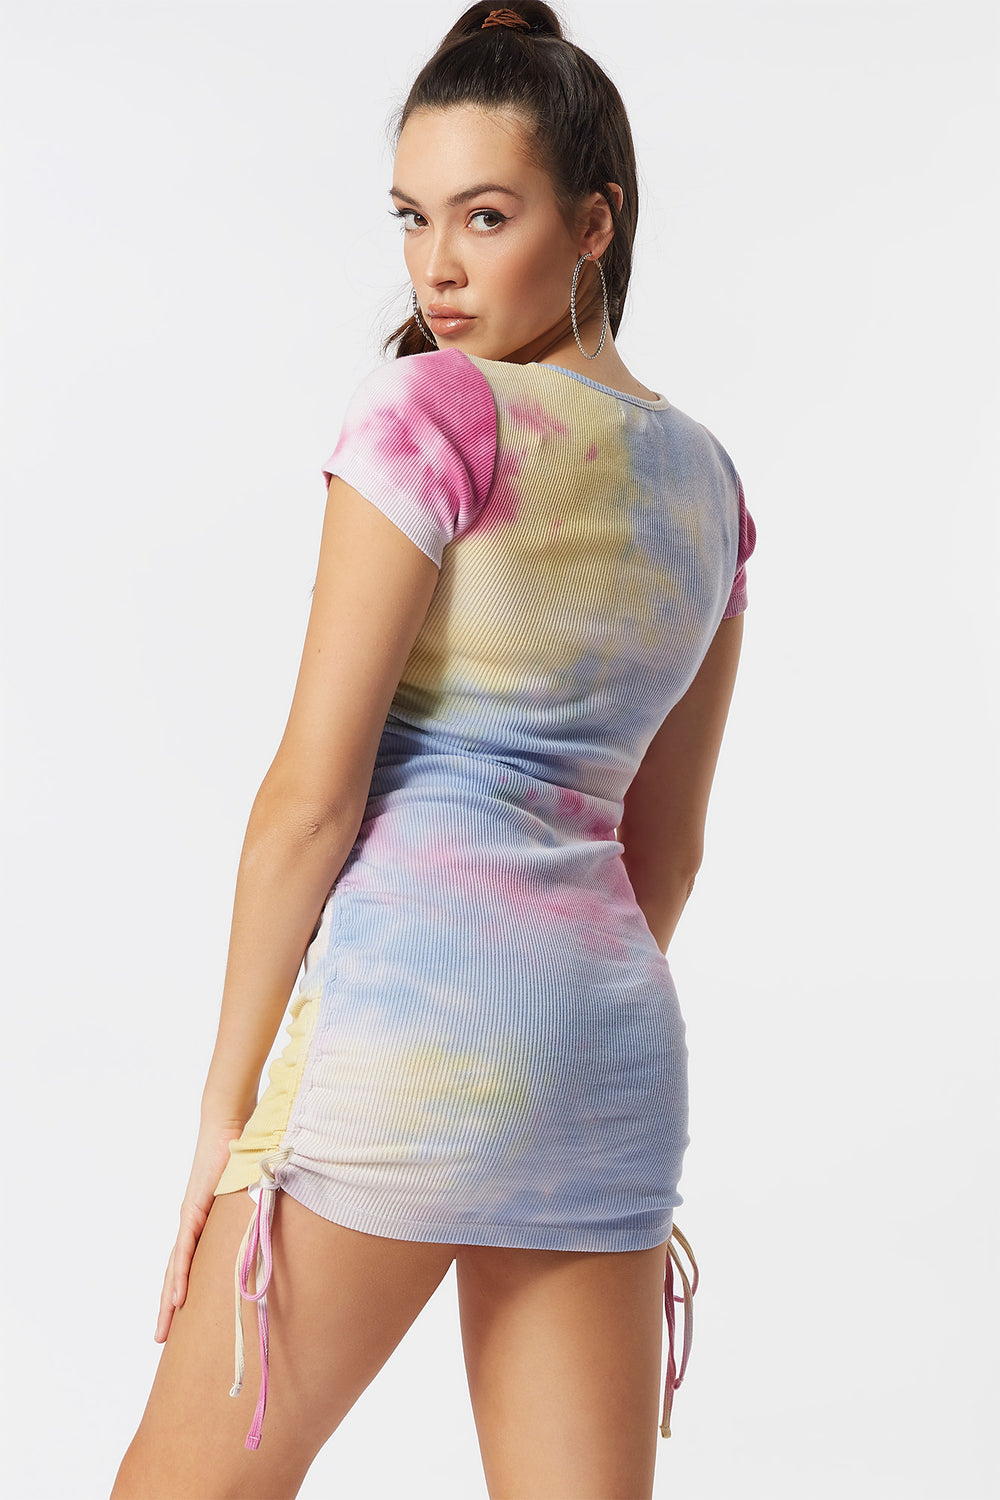 Ribbed Yellow Tie-Dye Ruched Side Tie Short Sleeve Mini Dress Multi